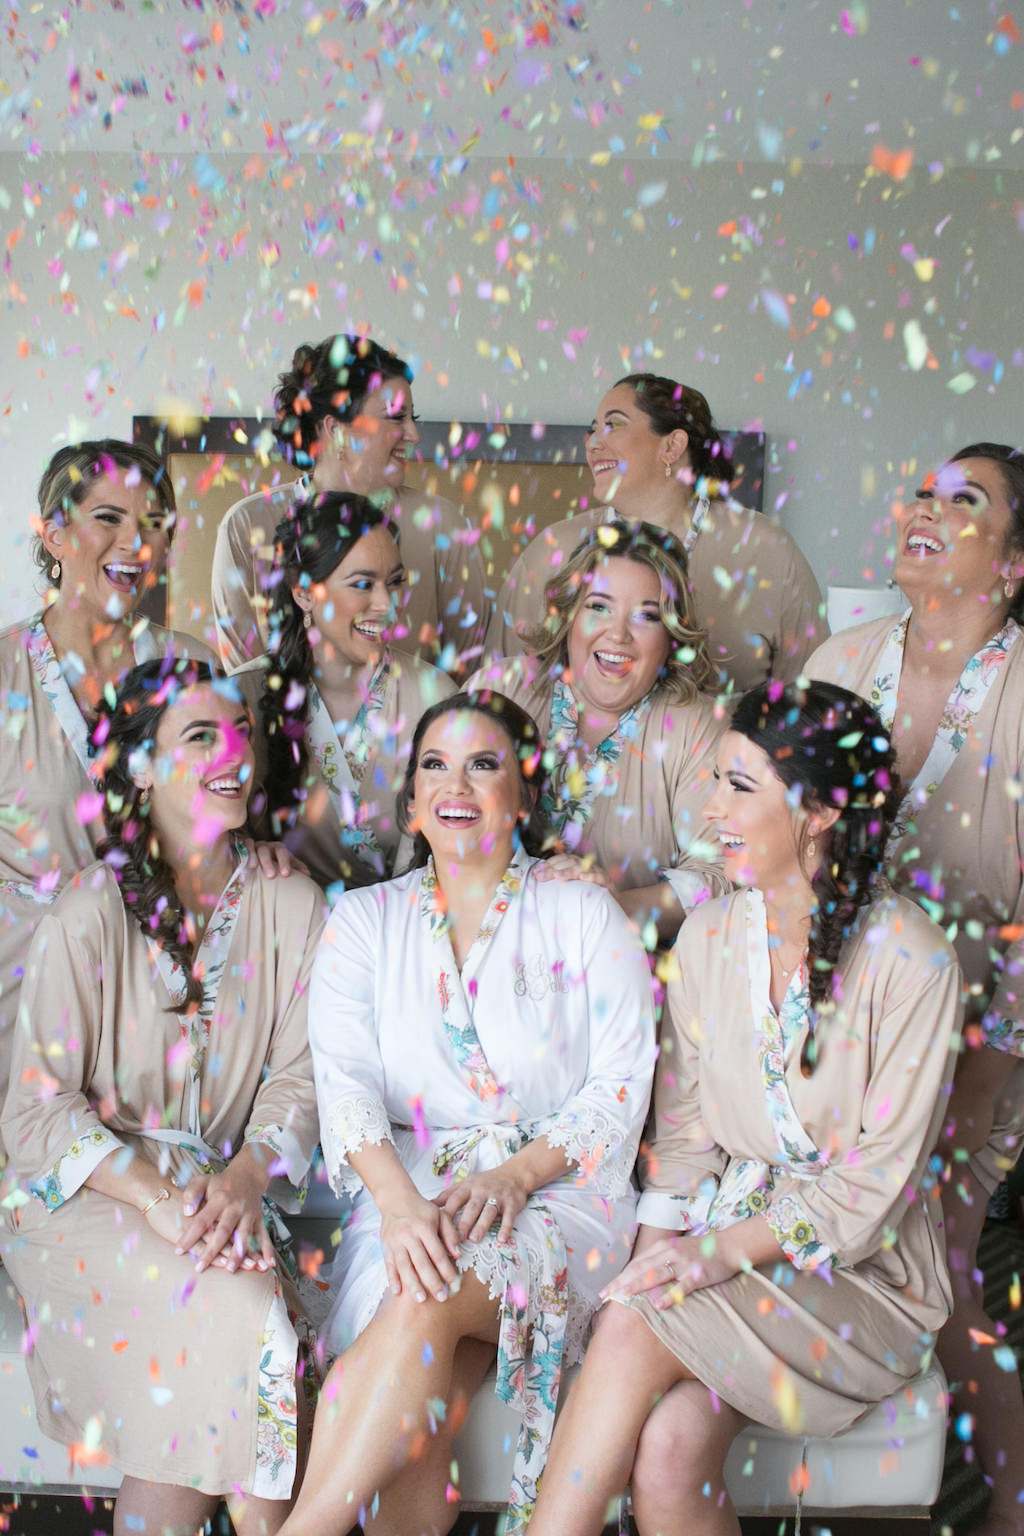 Bridal Party Getting Ready Wedding Portrait with Confetti Toss in Matching Mauve Silk Robes   Tampa Bay Wedding Photographer Carrie Wildes Photography